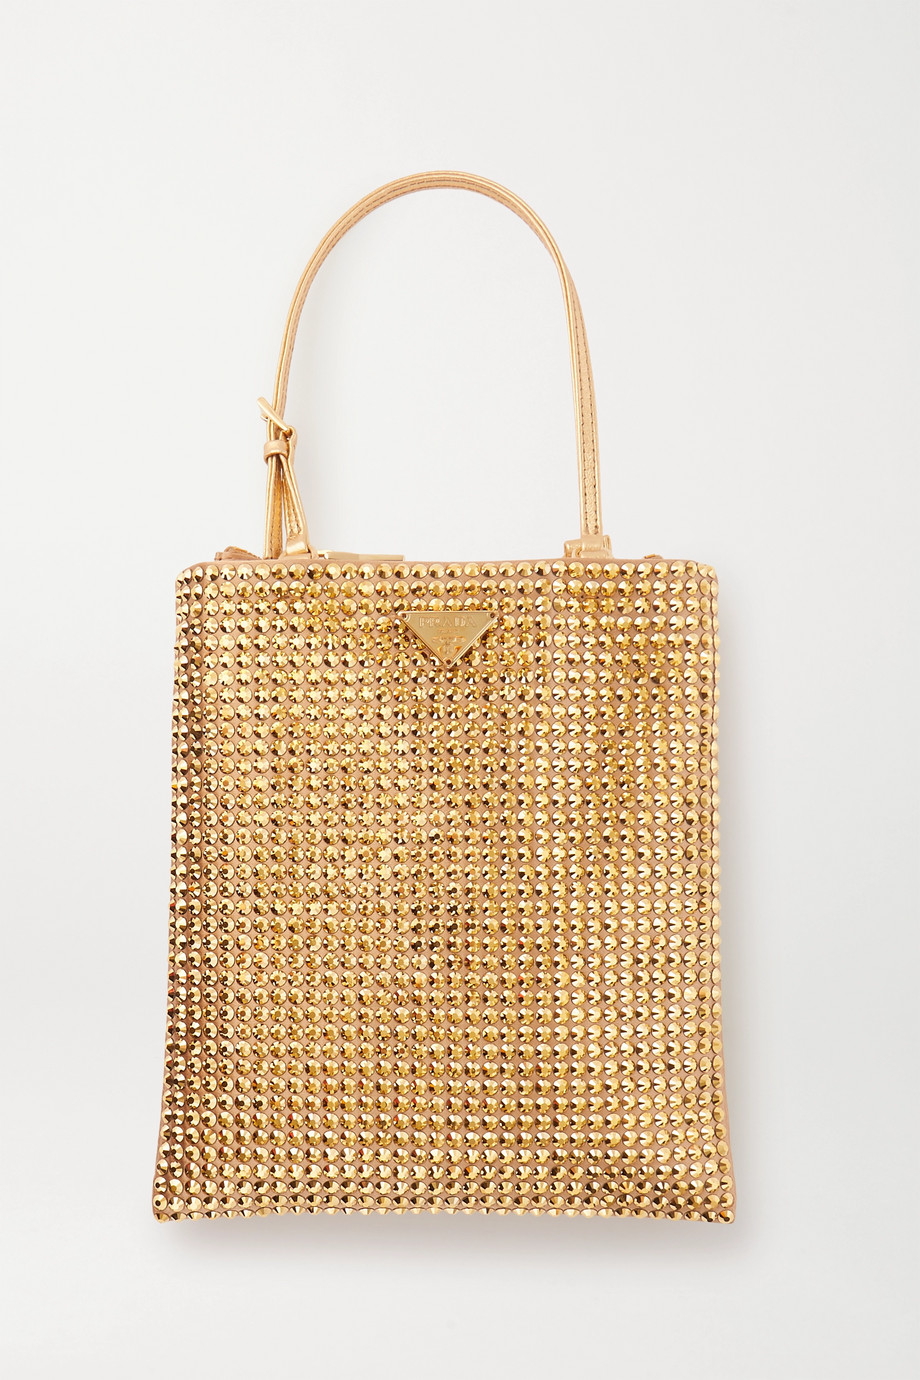 Prada Vela mini leather-trimmed crystal-embellished nylon tote